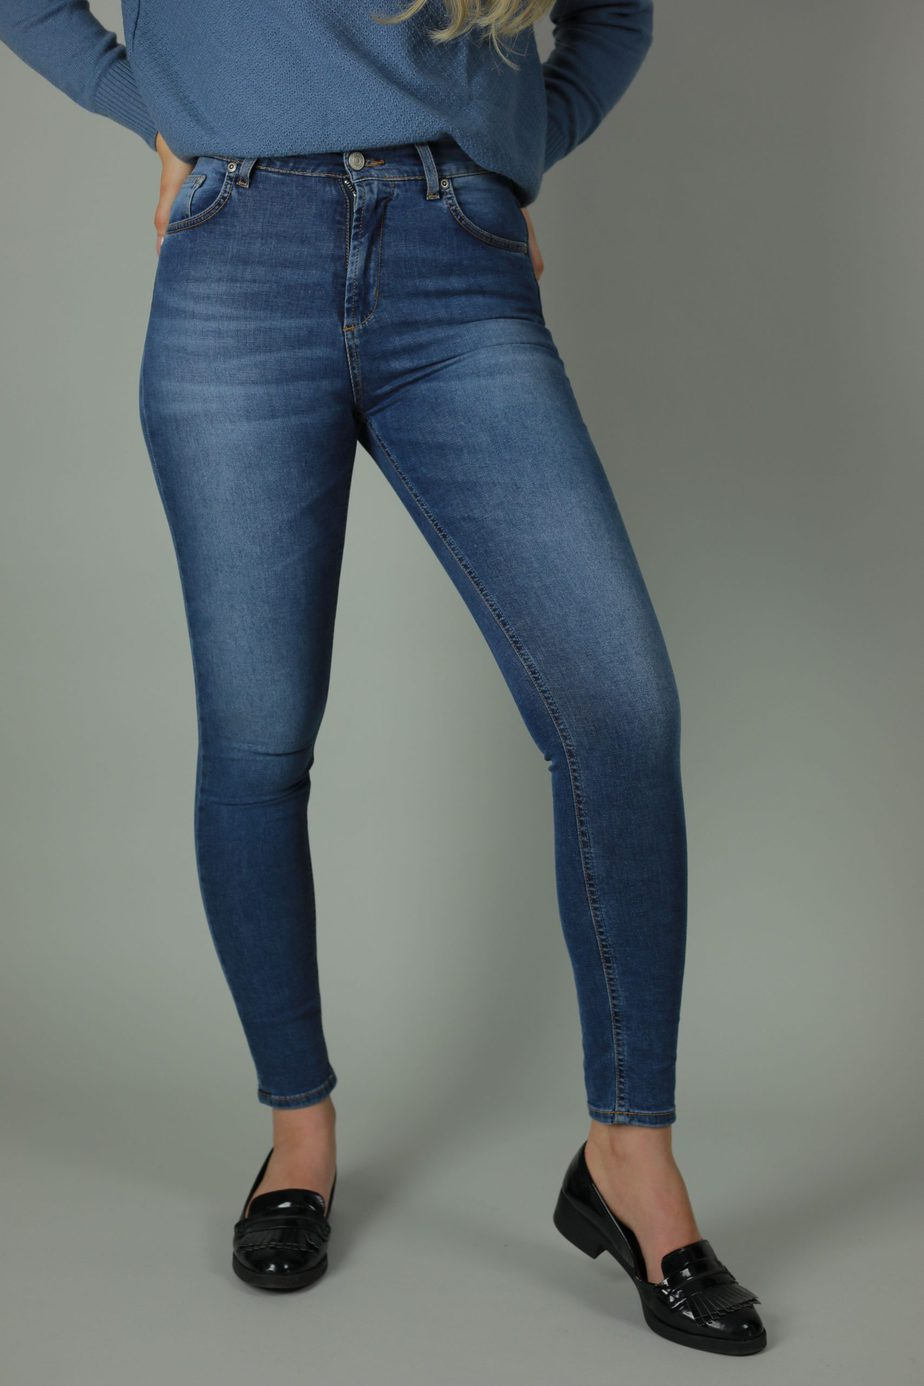 Our High waist Kaila collection are 98% cotton, 2% lycra jeans. Designed with quality in mind for the perfect fit and timeless style the Kaila Vienna is the perfect addition to your wardrobe year through year.